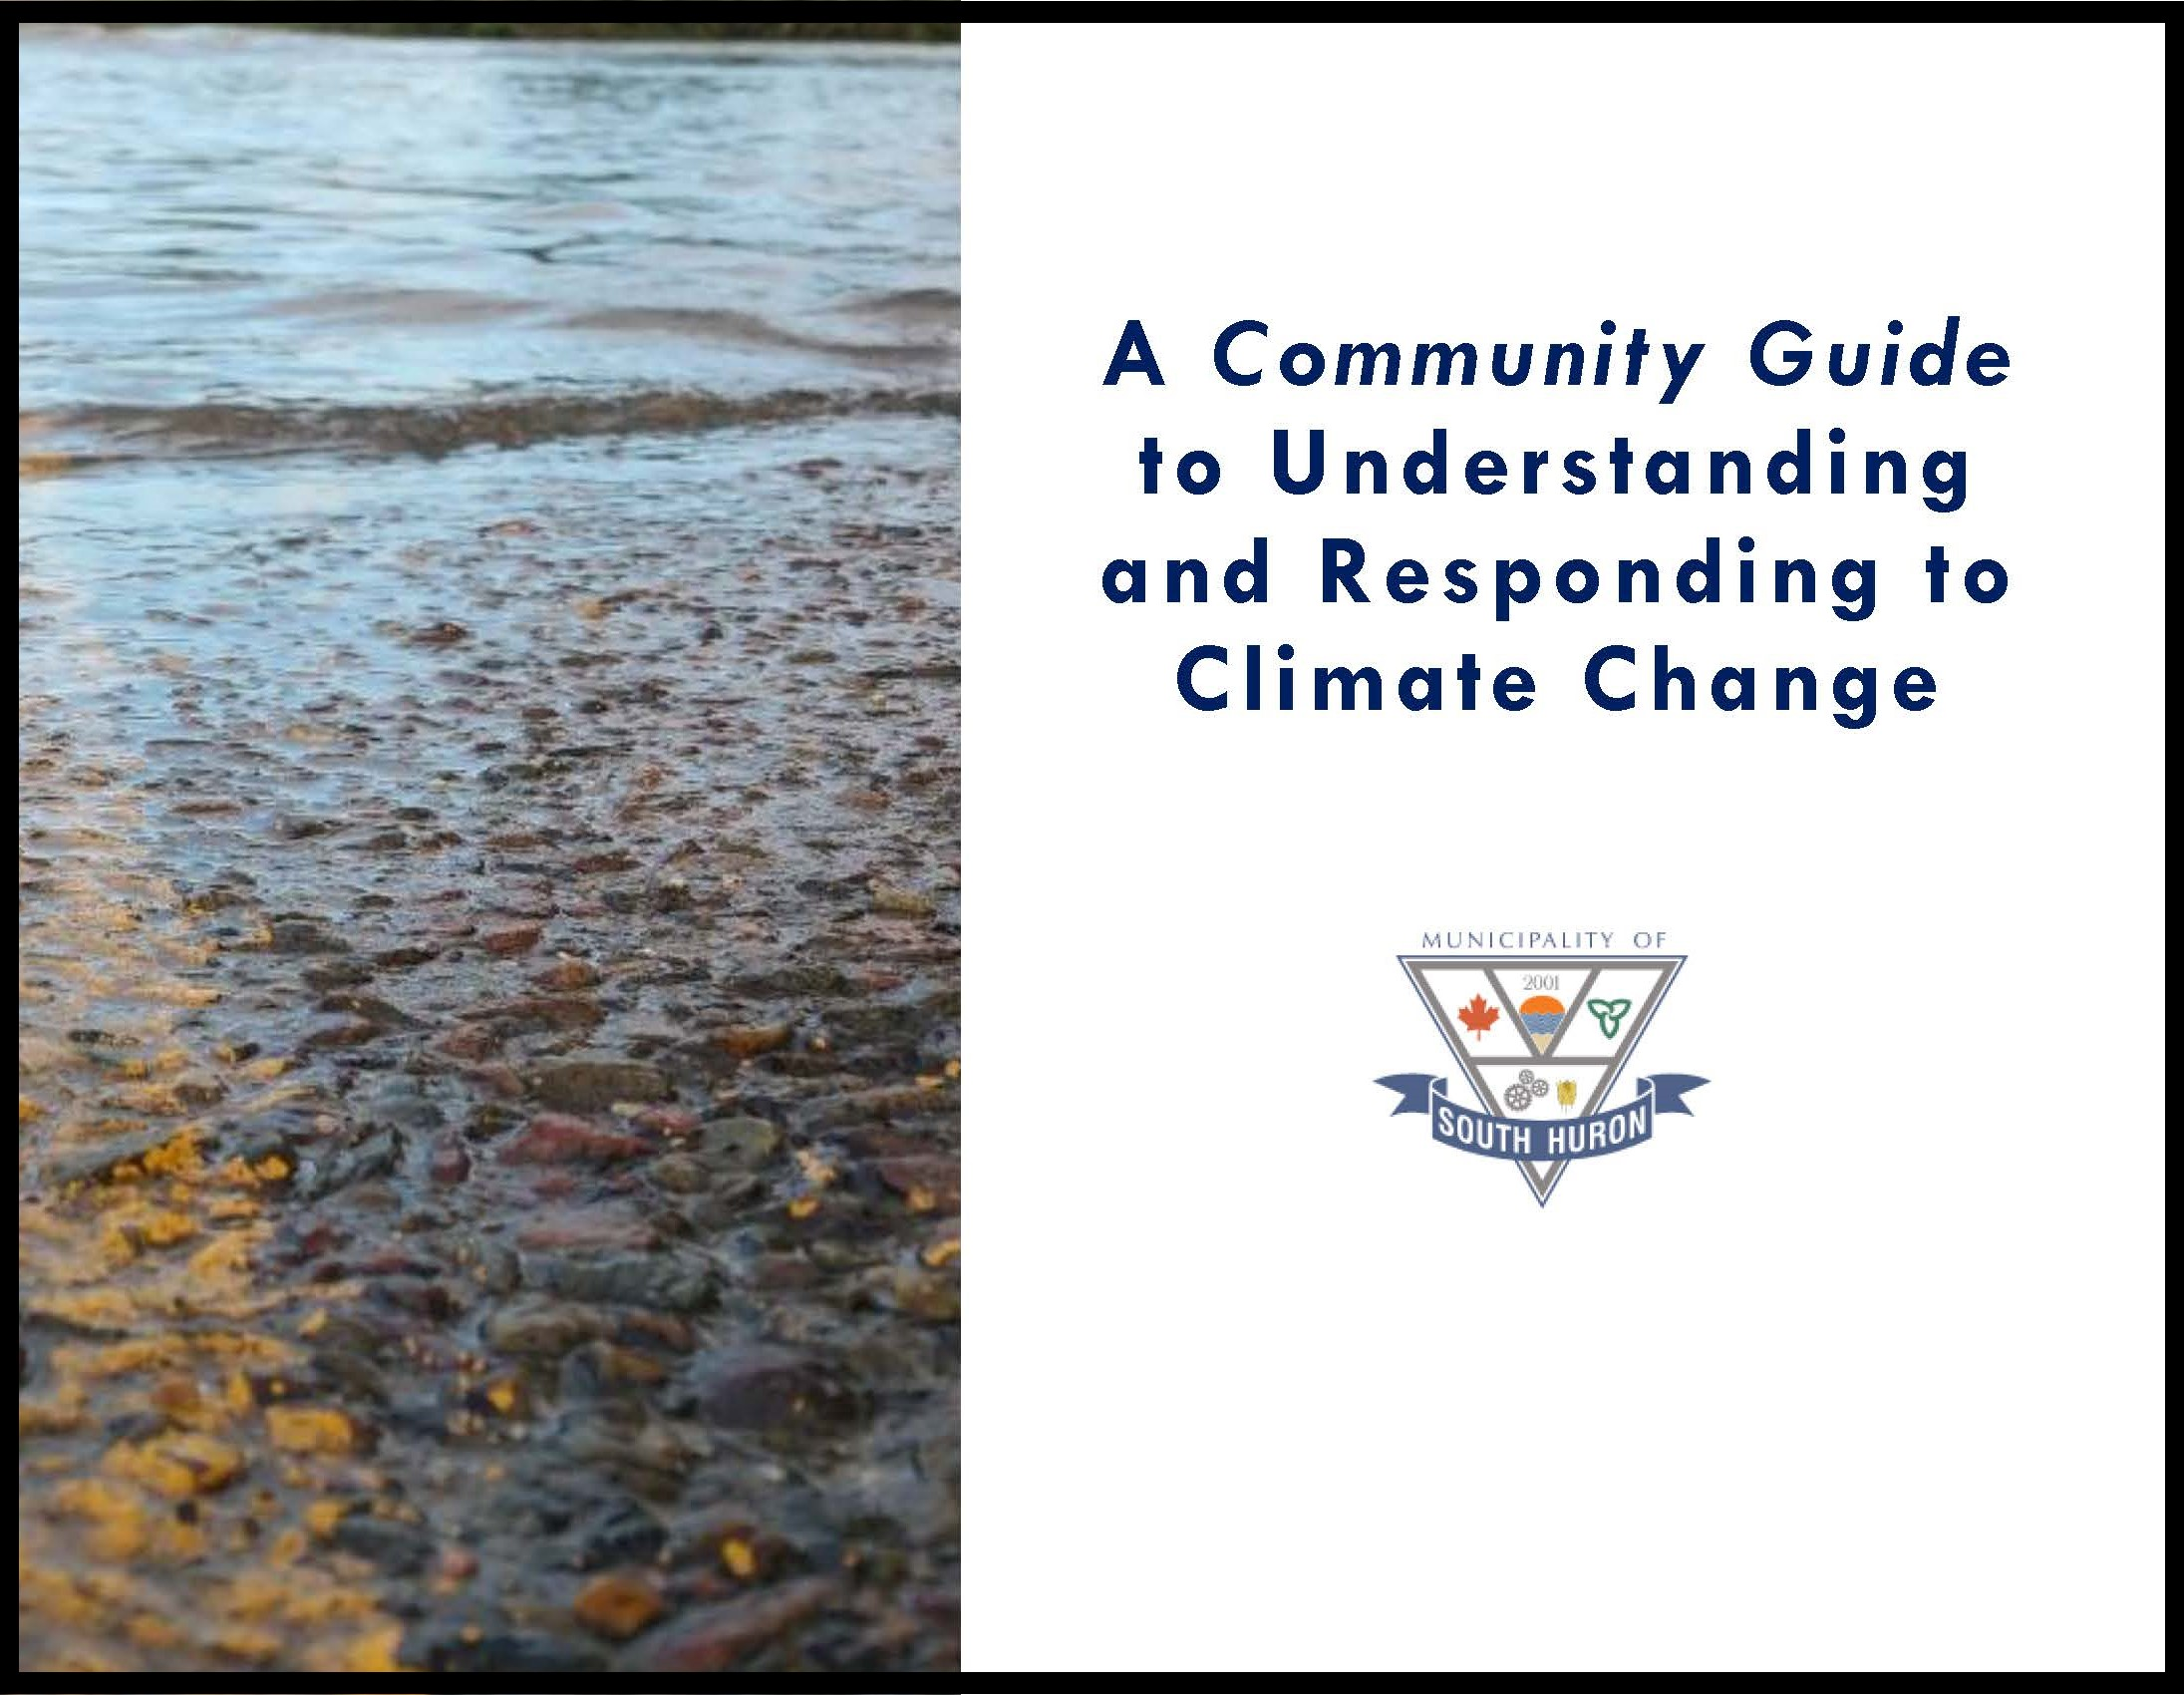 Cover of Community Guide to Understanding Climate Change and How to Respond document